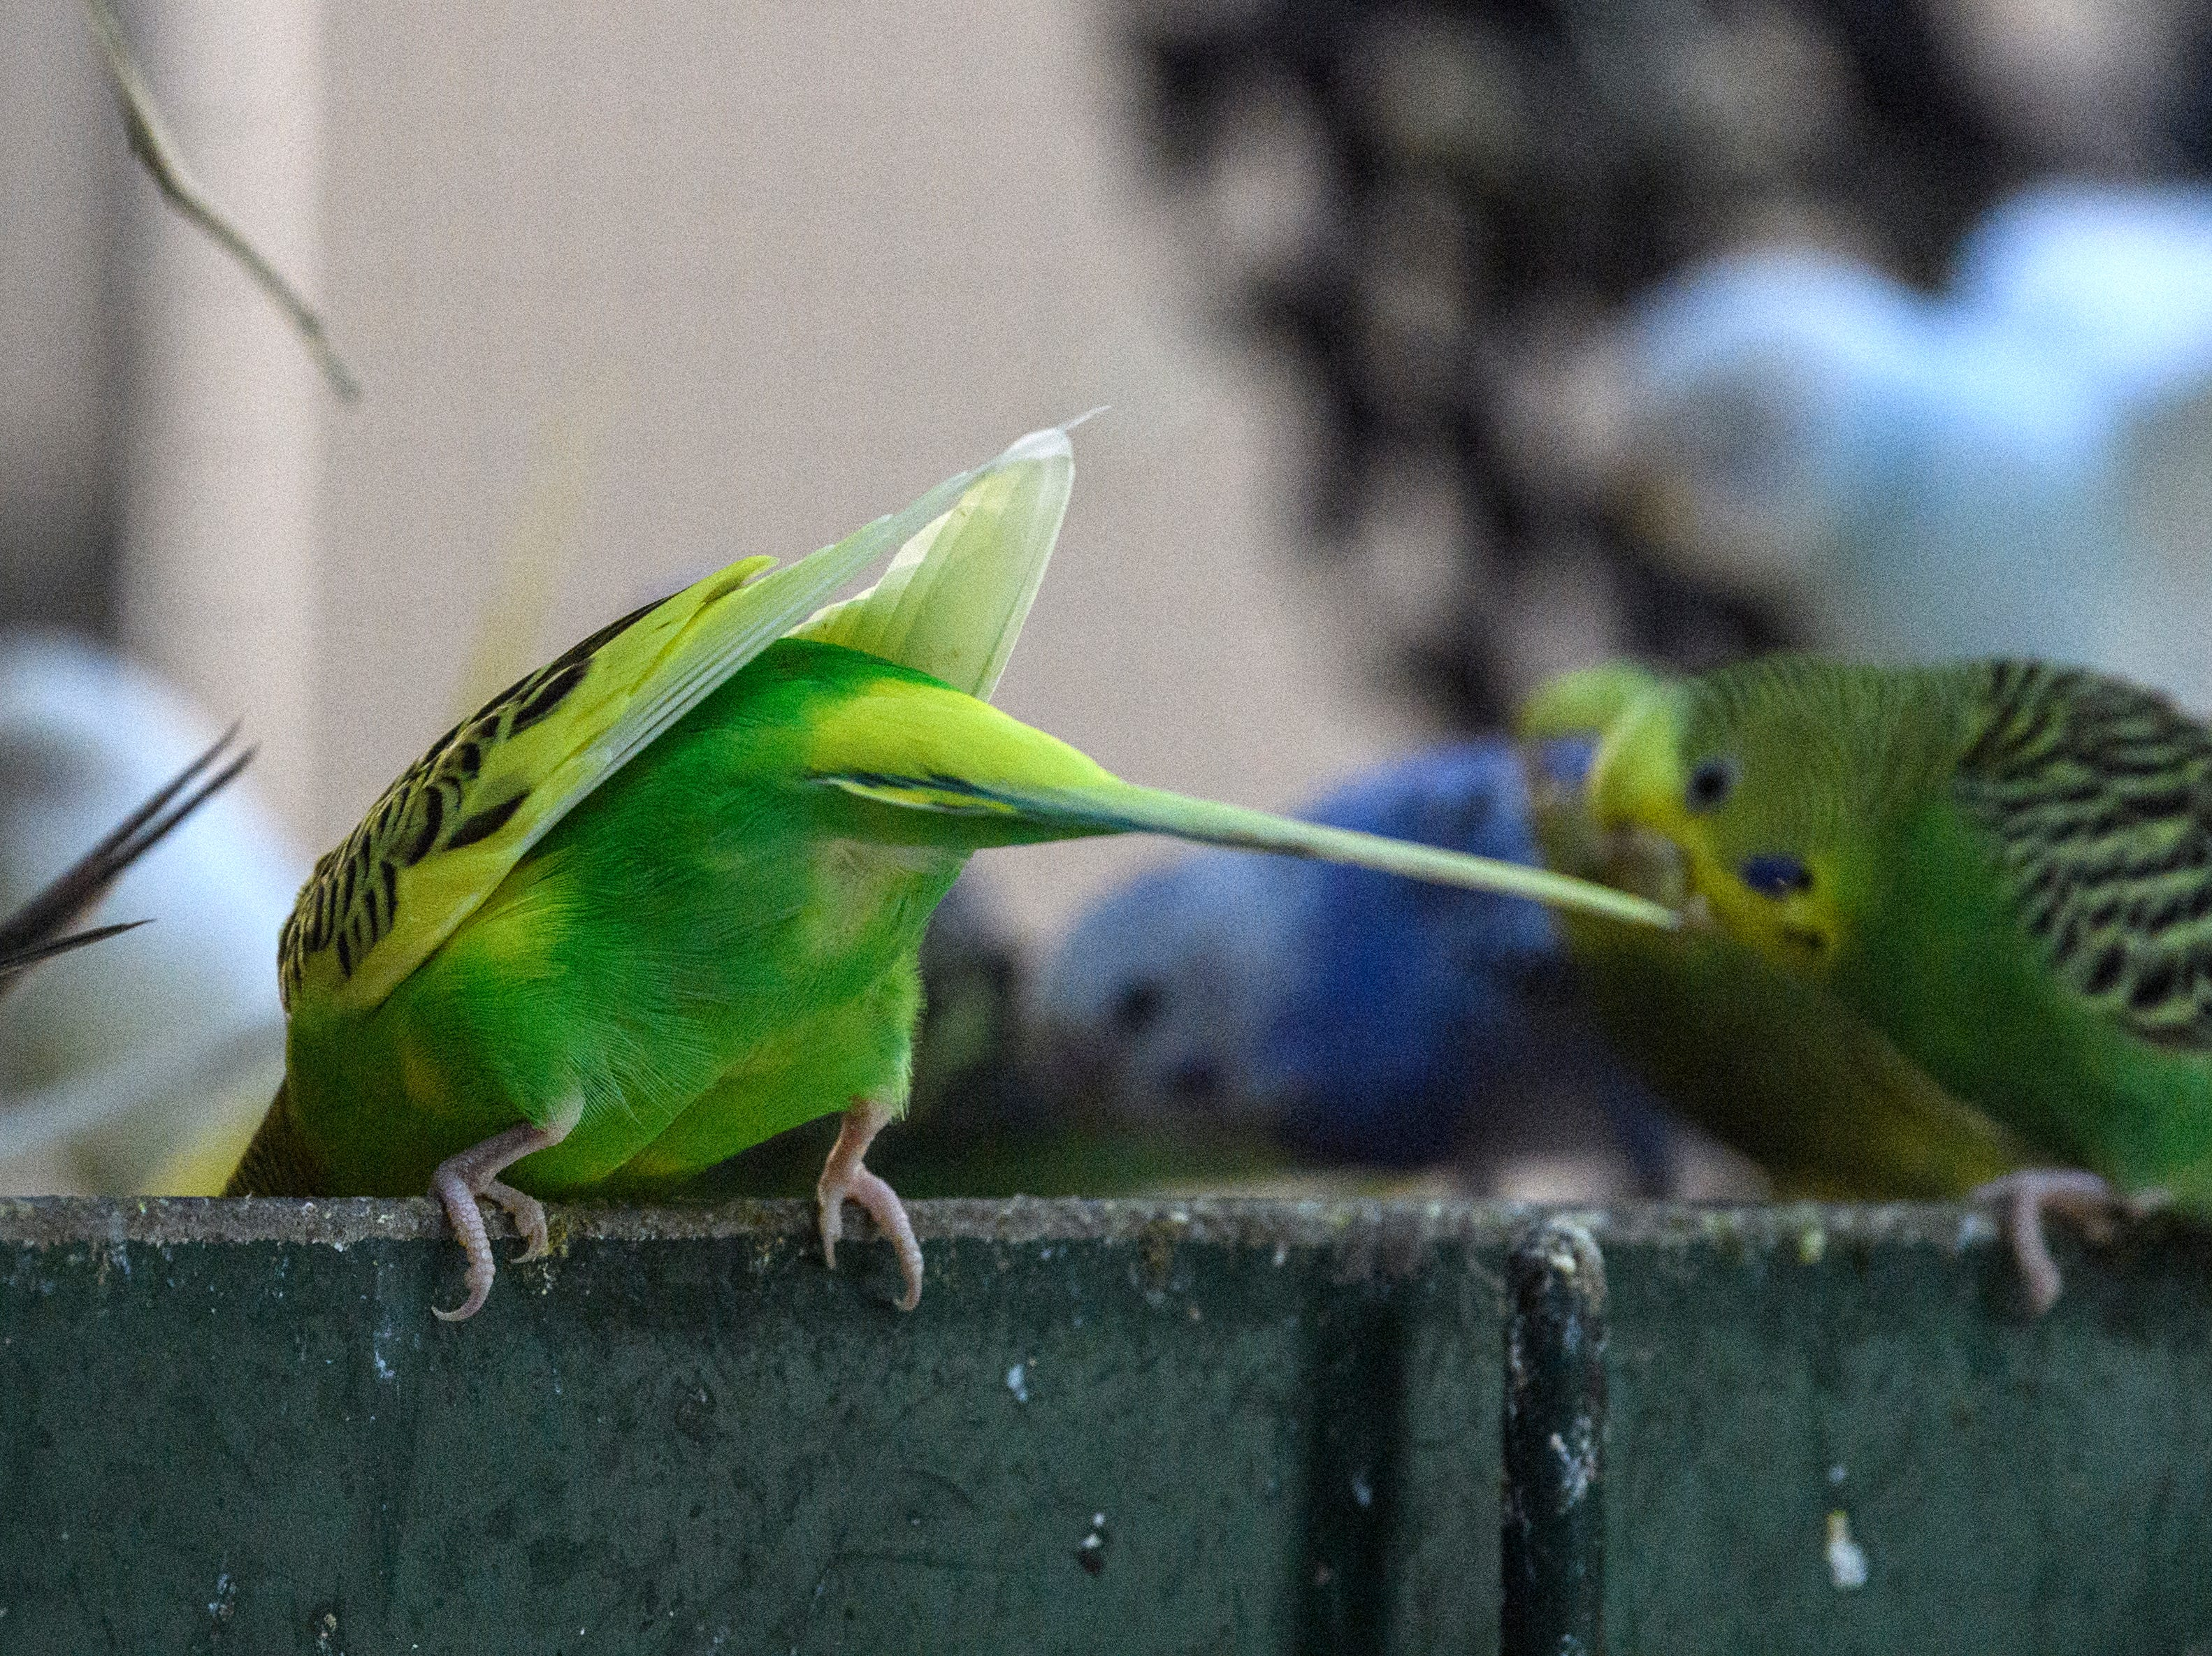 Budgies eat their mid-morning breakfast at Mesker Park Zoo in Evansville, Ind., Thursday, May 2, 2019. The new interactive outdoor Budgie exhibit will open to the public on May 17.